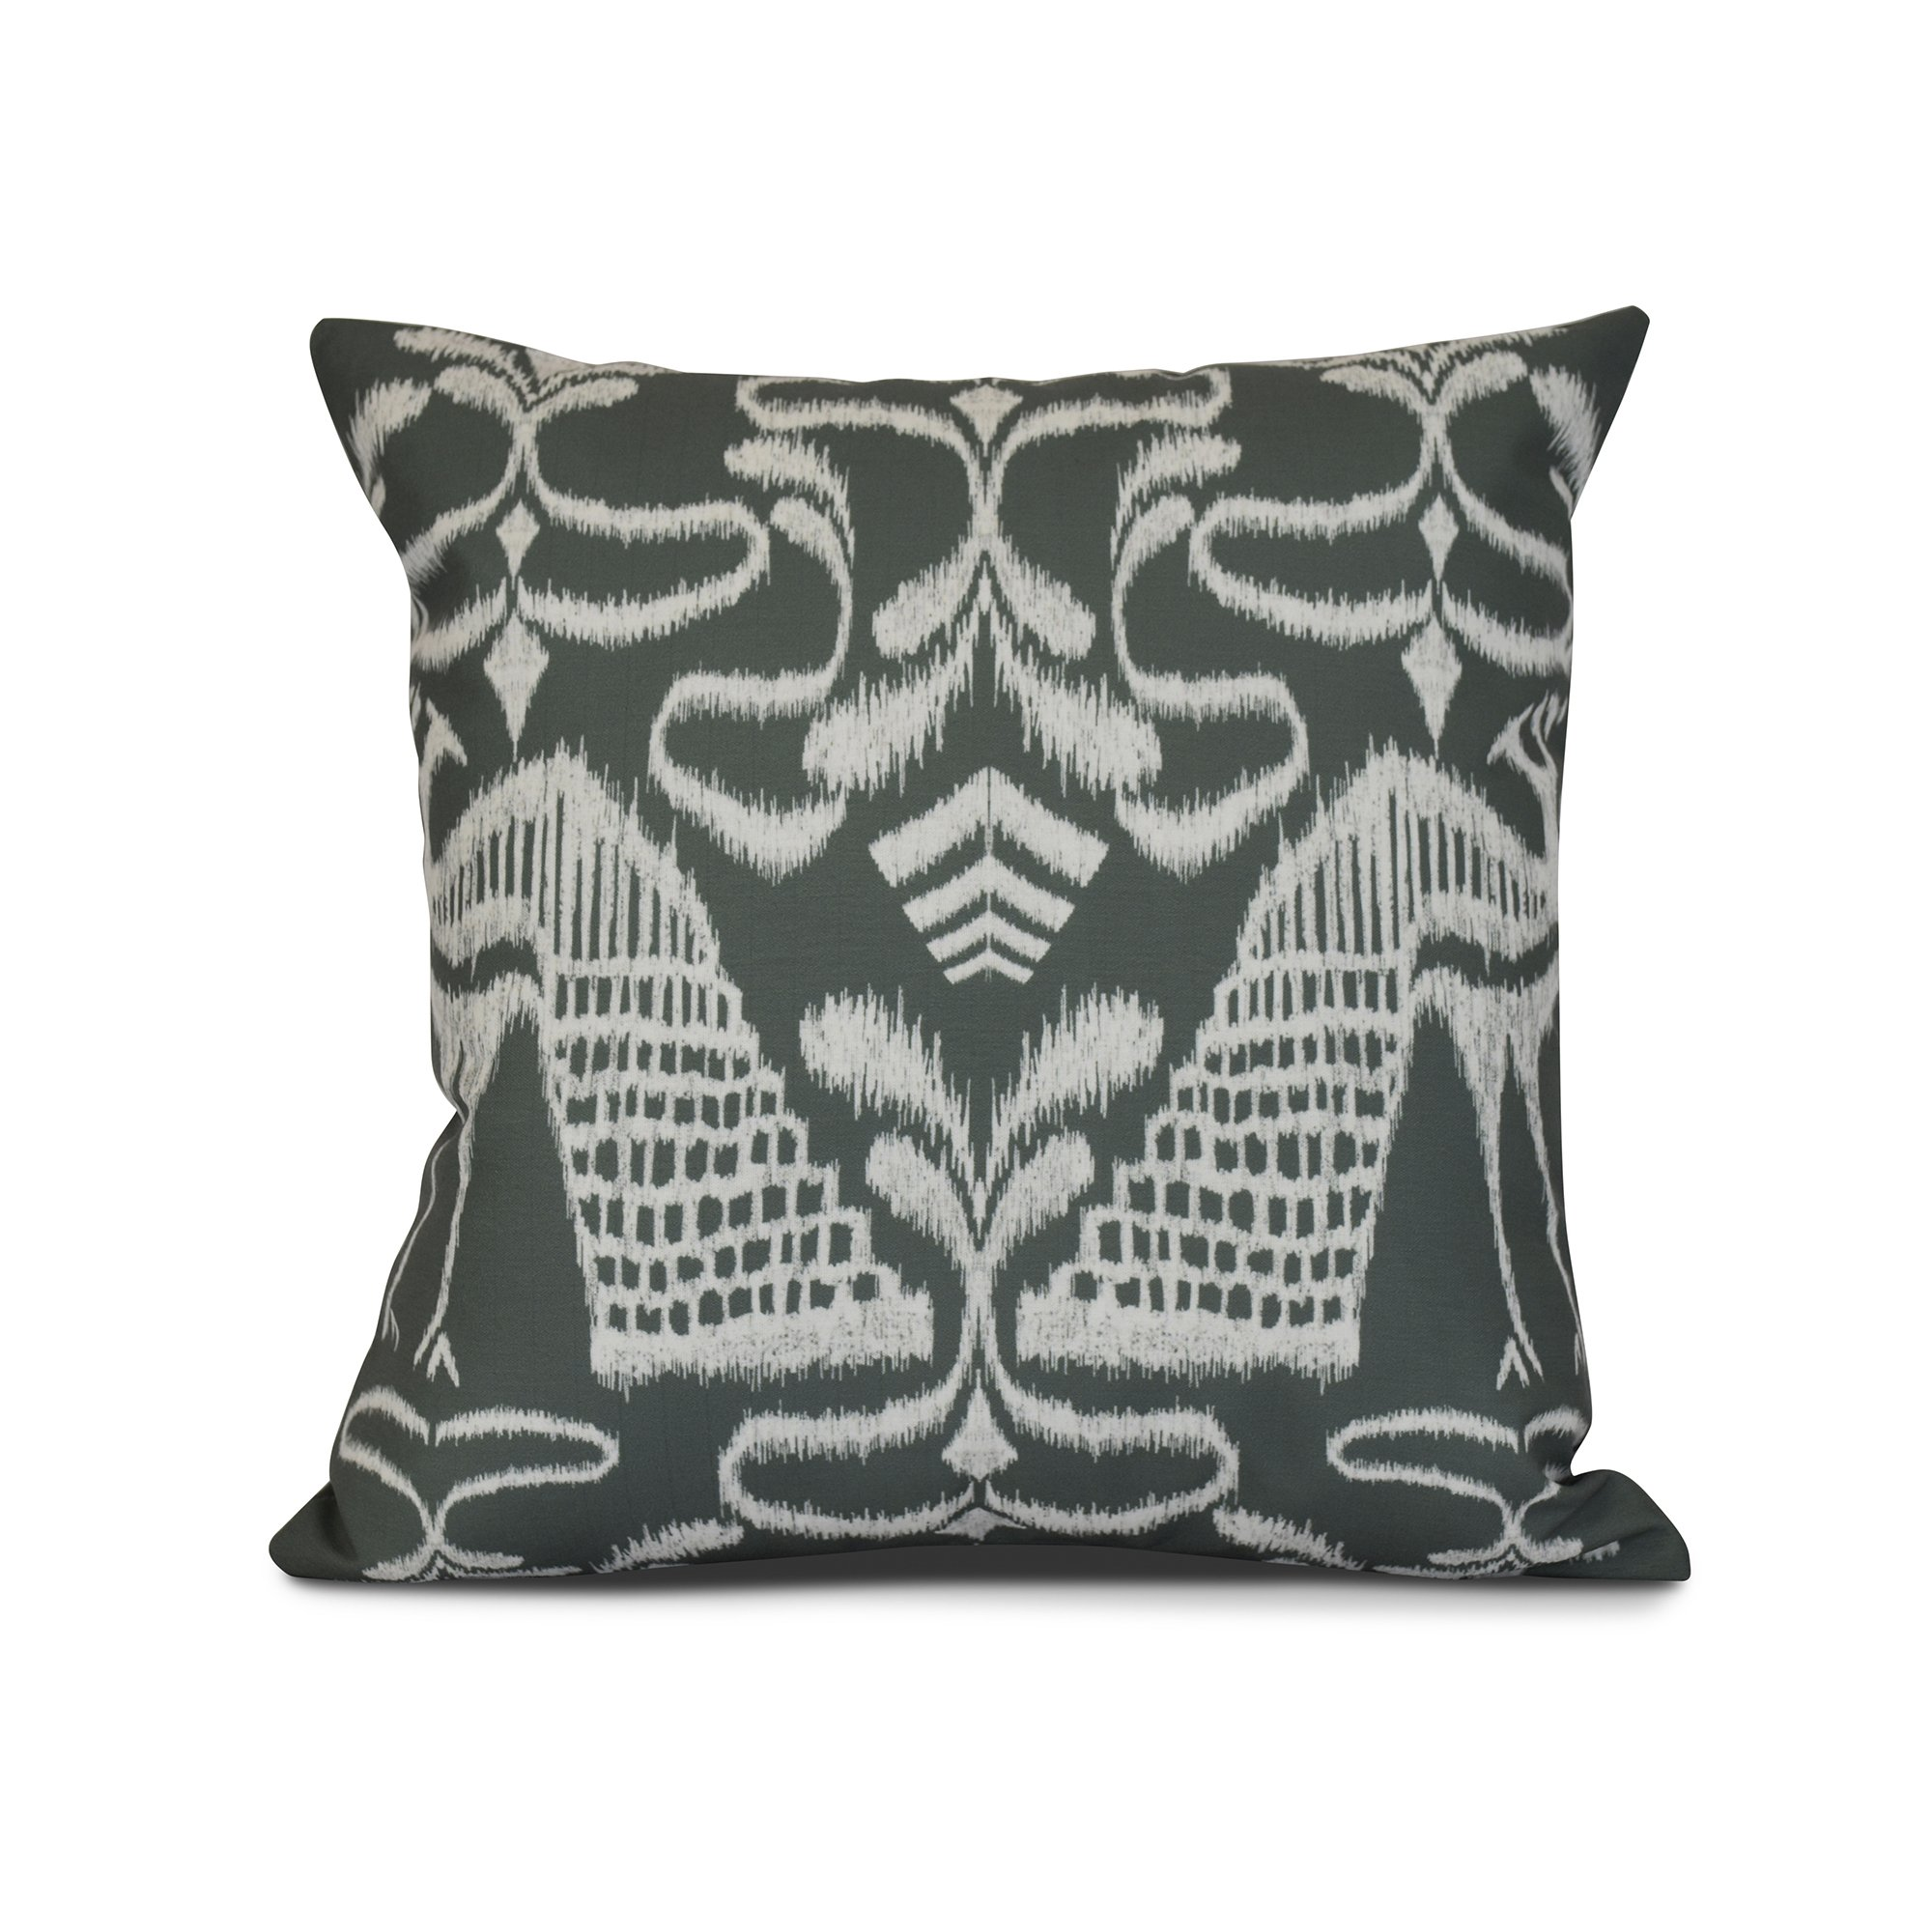 E by design Crown Animal Print Outdoor Pillow, 18 x 18, Gray